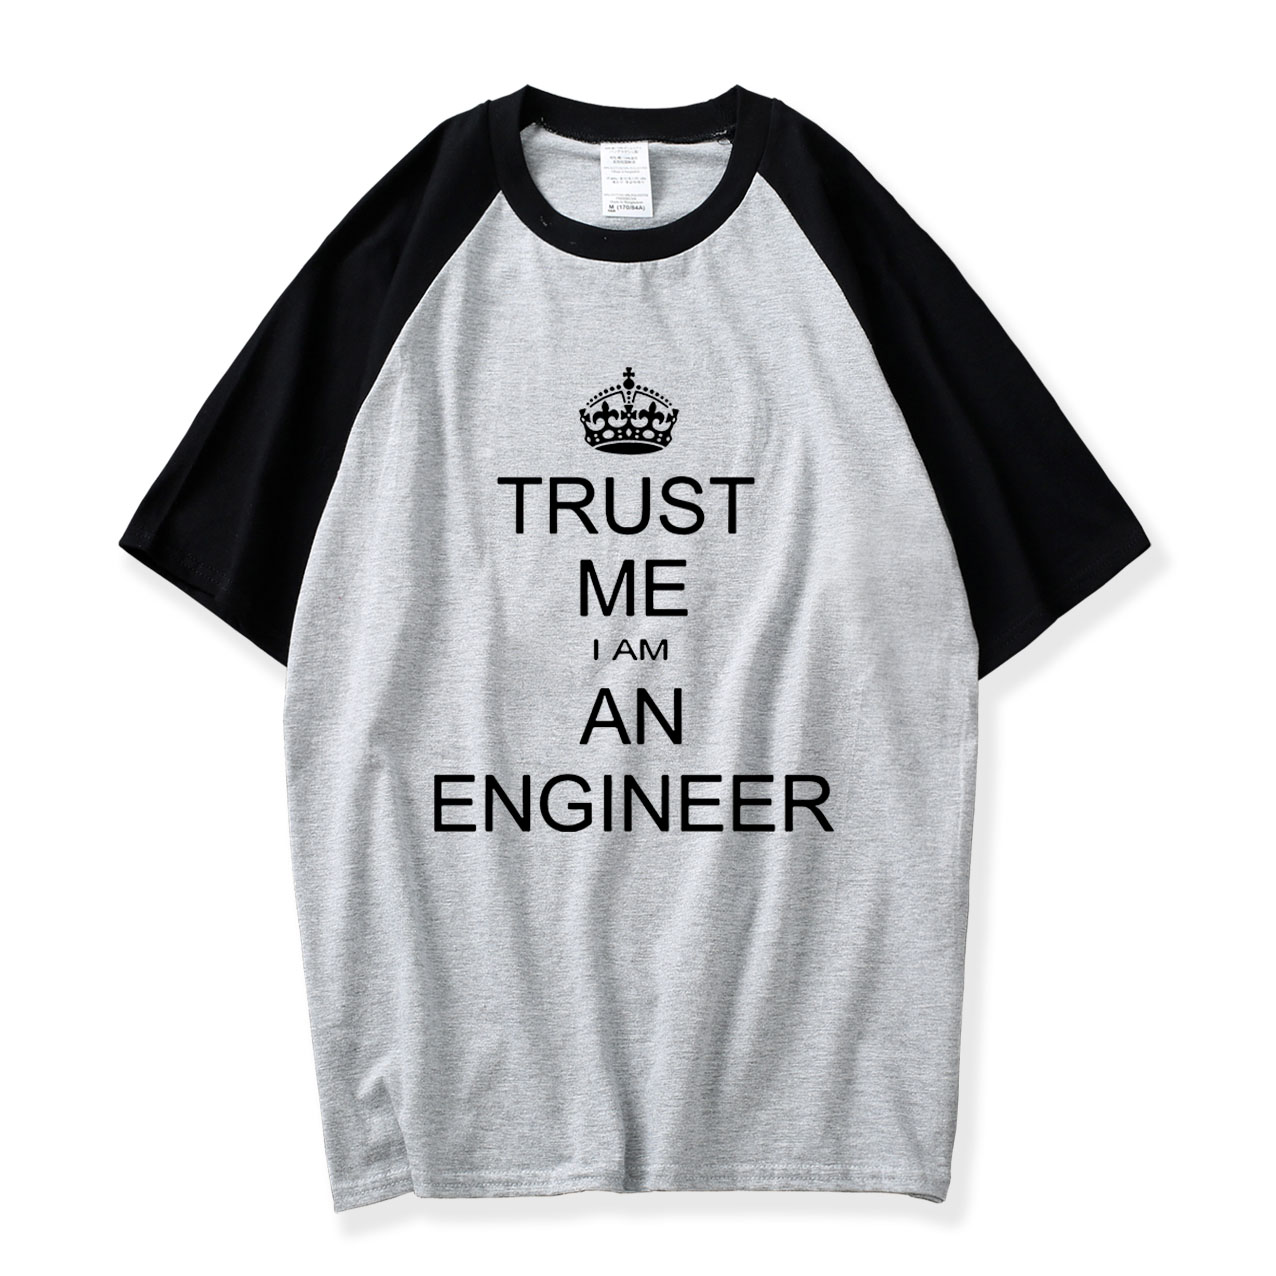 Wholesale Tshirt Plain Men Summer Raglan T Shirt I Am An Keep Calm Trust Me Humor Engineer Letter Cotton Short Sleeve Shirts Top